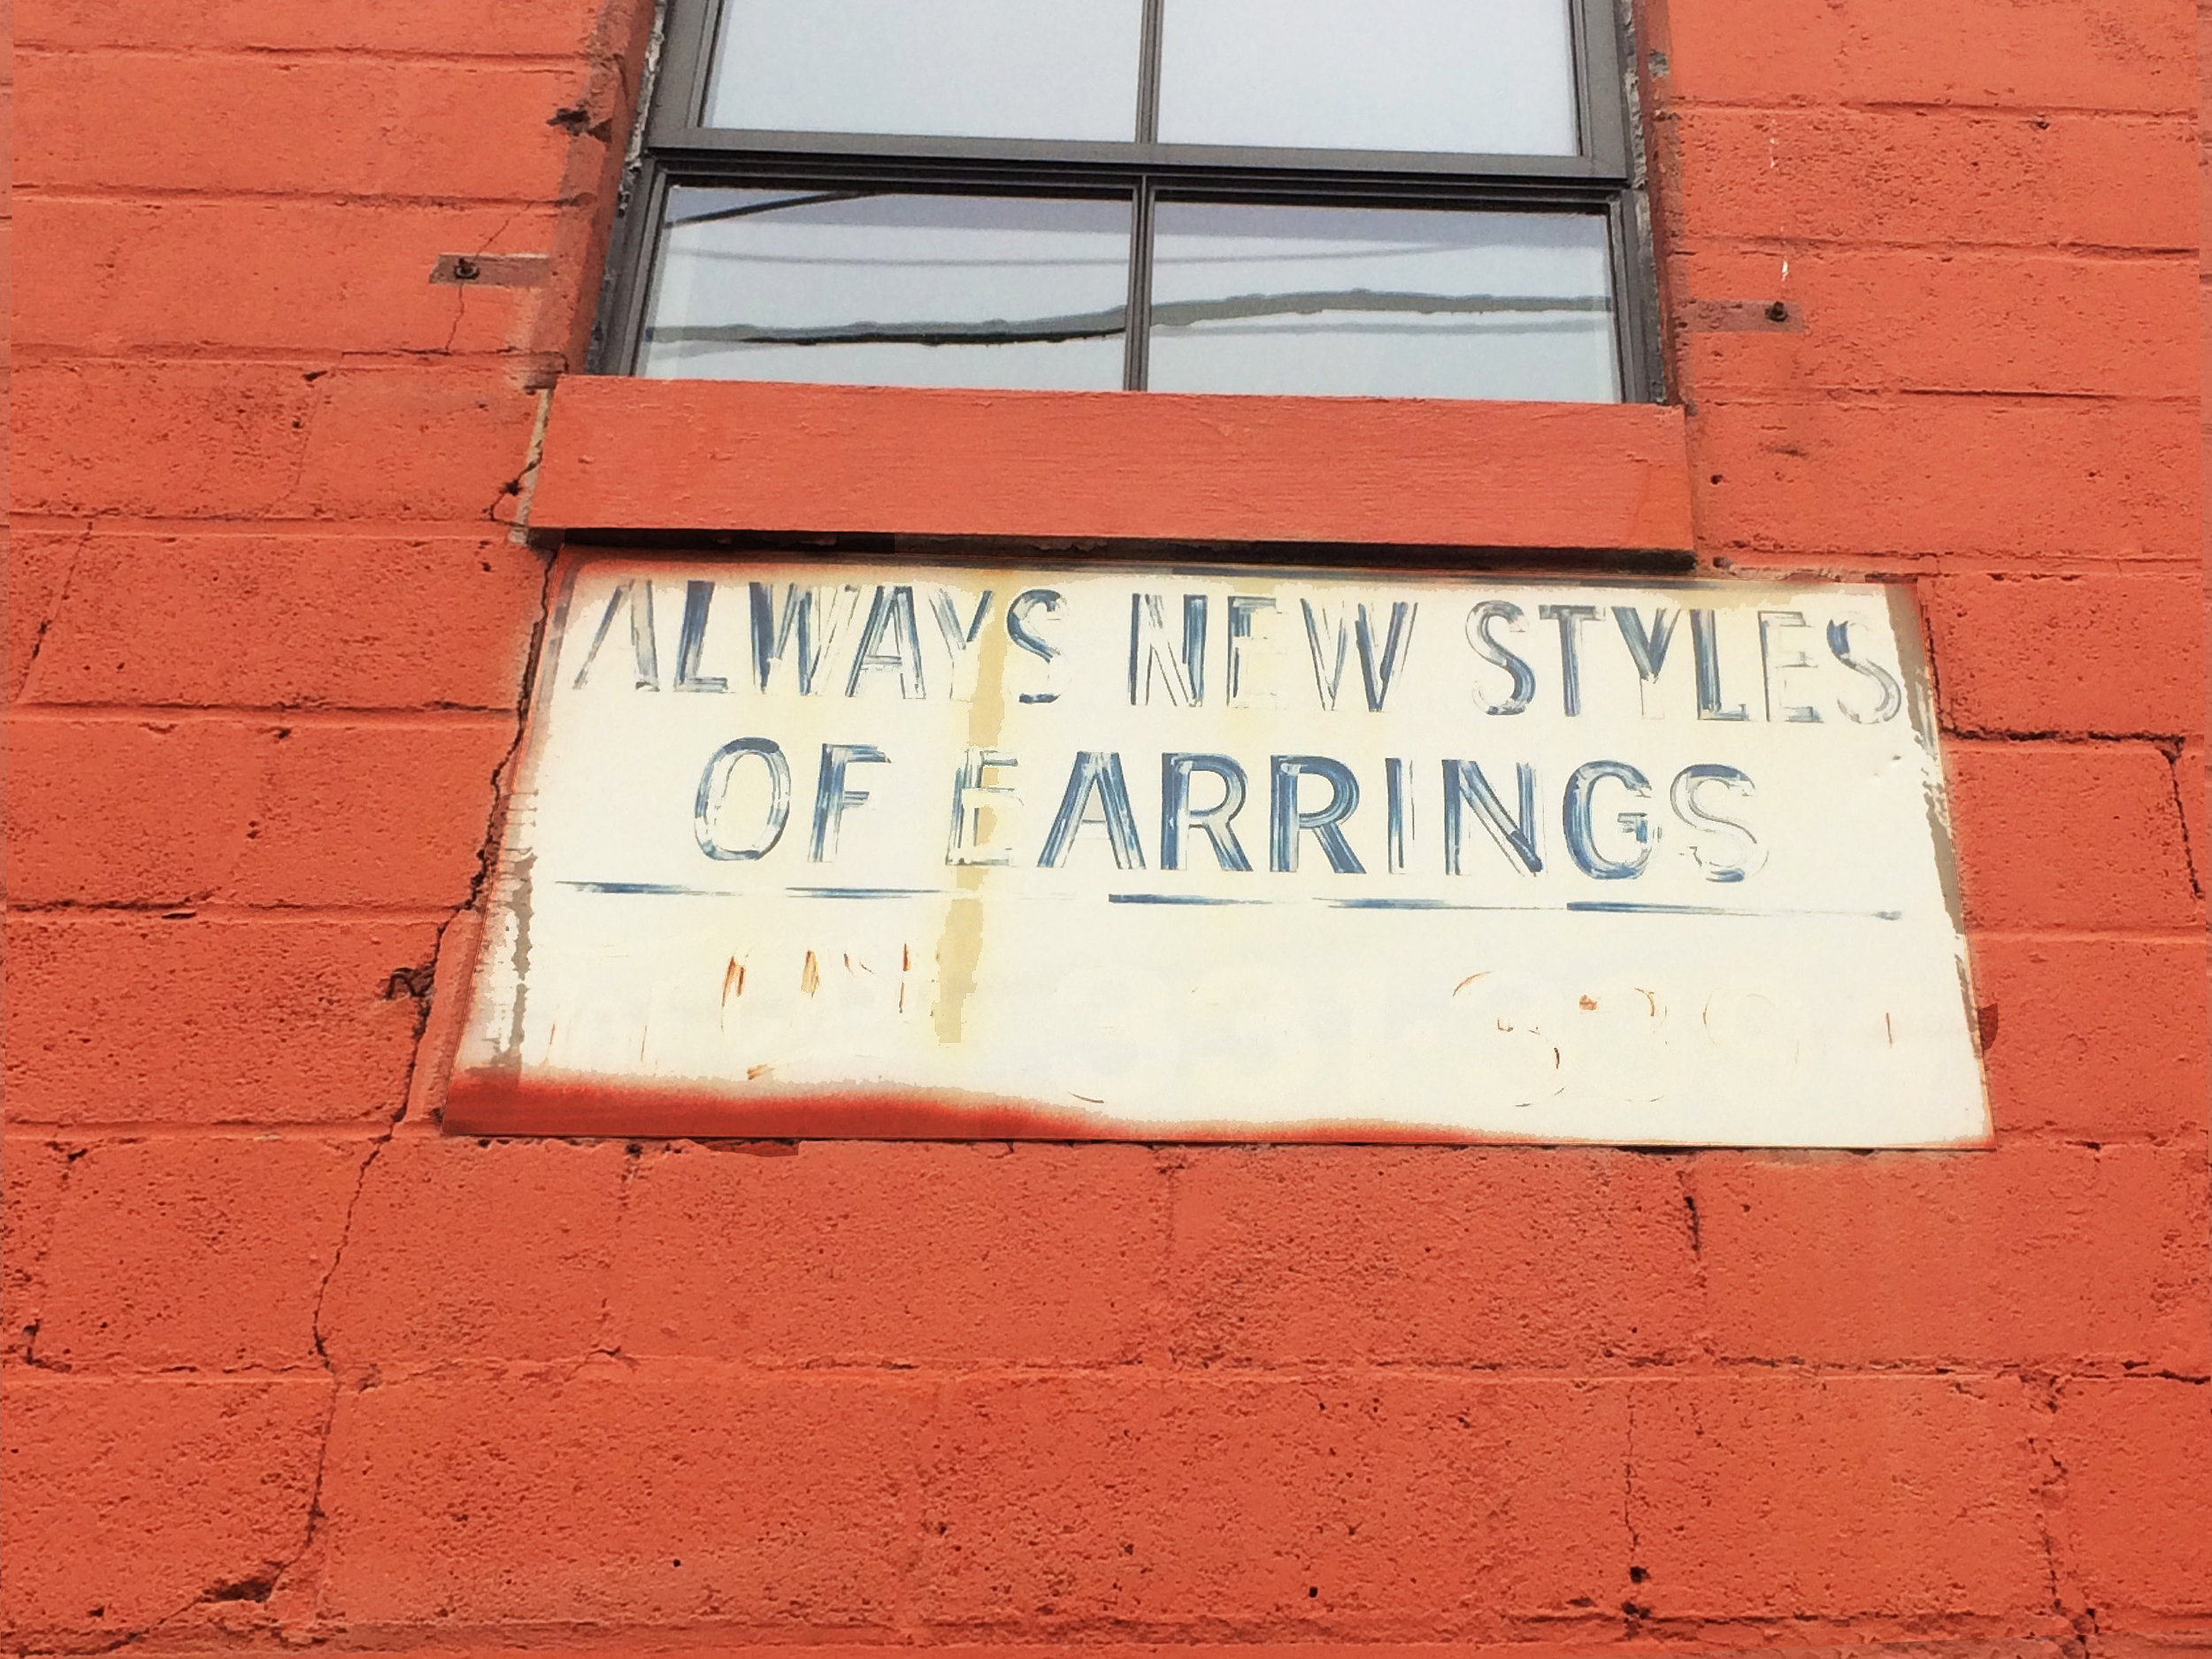 """""""ALWAYS NEW STYLES OF EARRINGS"""" Still reads on one of the walls from the time the buidling was a storage for costume jewelry,a testament to its layered history"""